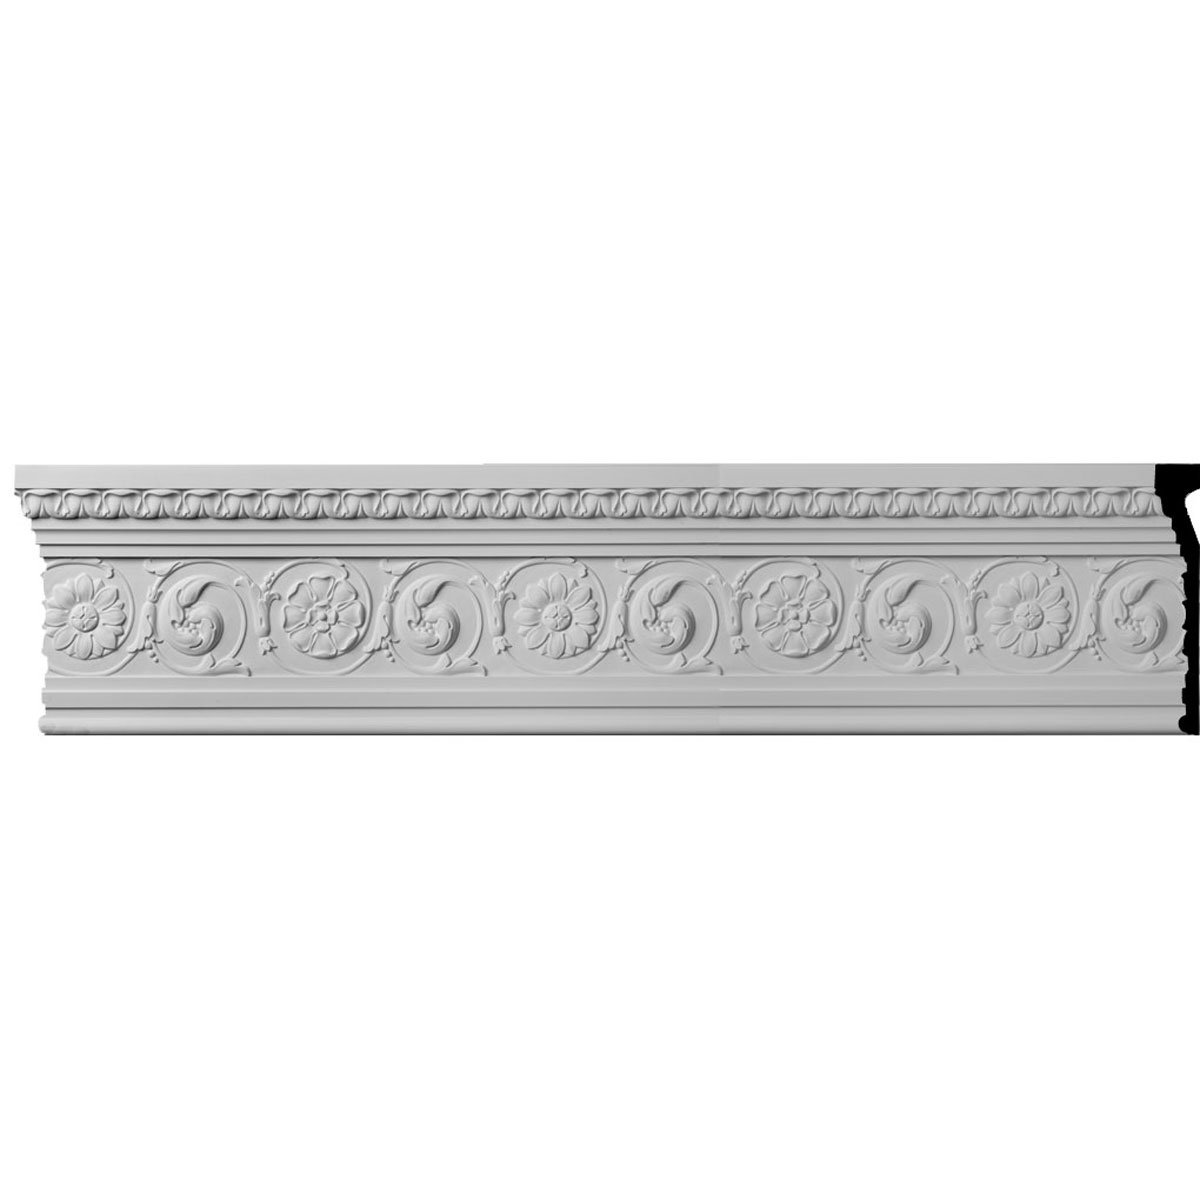 Ekena Millwork MLD11X02BE-CASE-12 11-1/4'' H x 1-7/8'' P x 96'' L Bedford with Flowers Molding with 19-1/4'' Repeat (12-Pack)